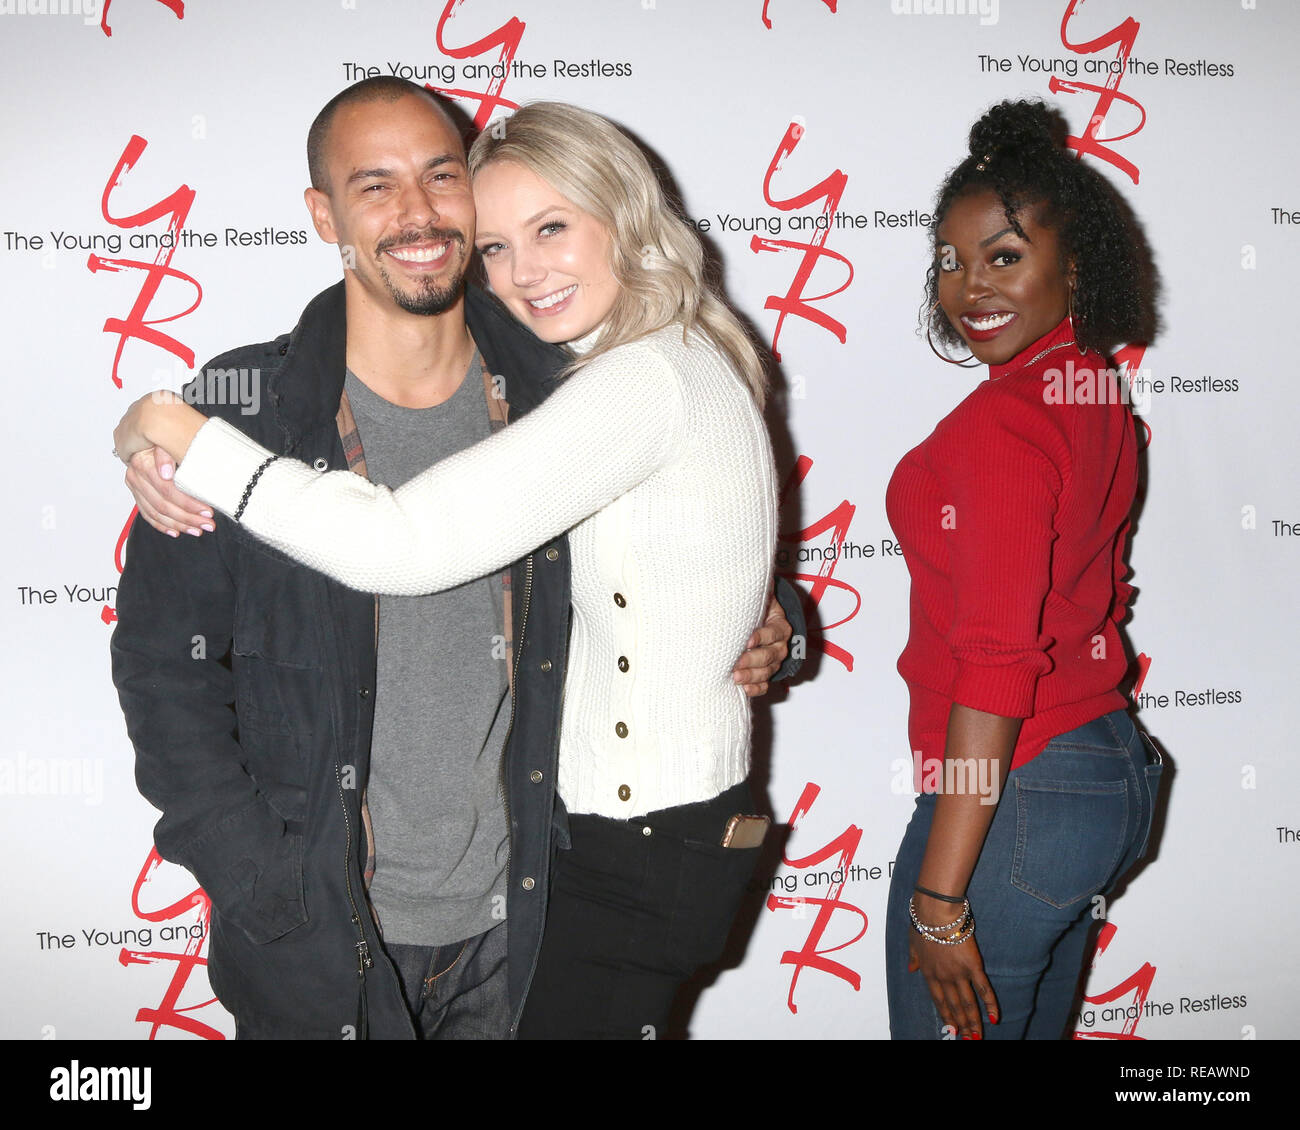 January 17, 2019 - Los Angeles, CA, USA - LOS ANGELES - JAN 17:  Bryton James, Melissa Ordway, Loren Lott at the Young and the Restless Celebrates 30 Years at #1 at the CBS Television CIty on January 17, 2019 in Los Angeles, CA (Credit Image: © Kay Blake/ZUMA Wire) - Stock Image